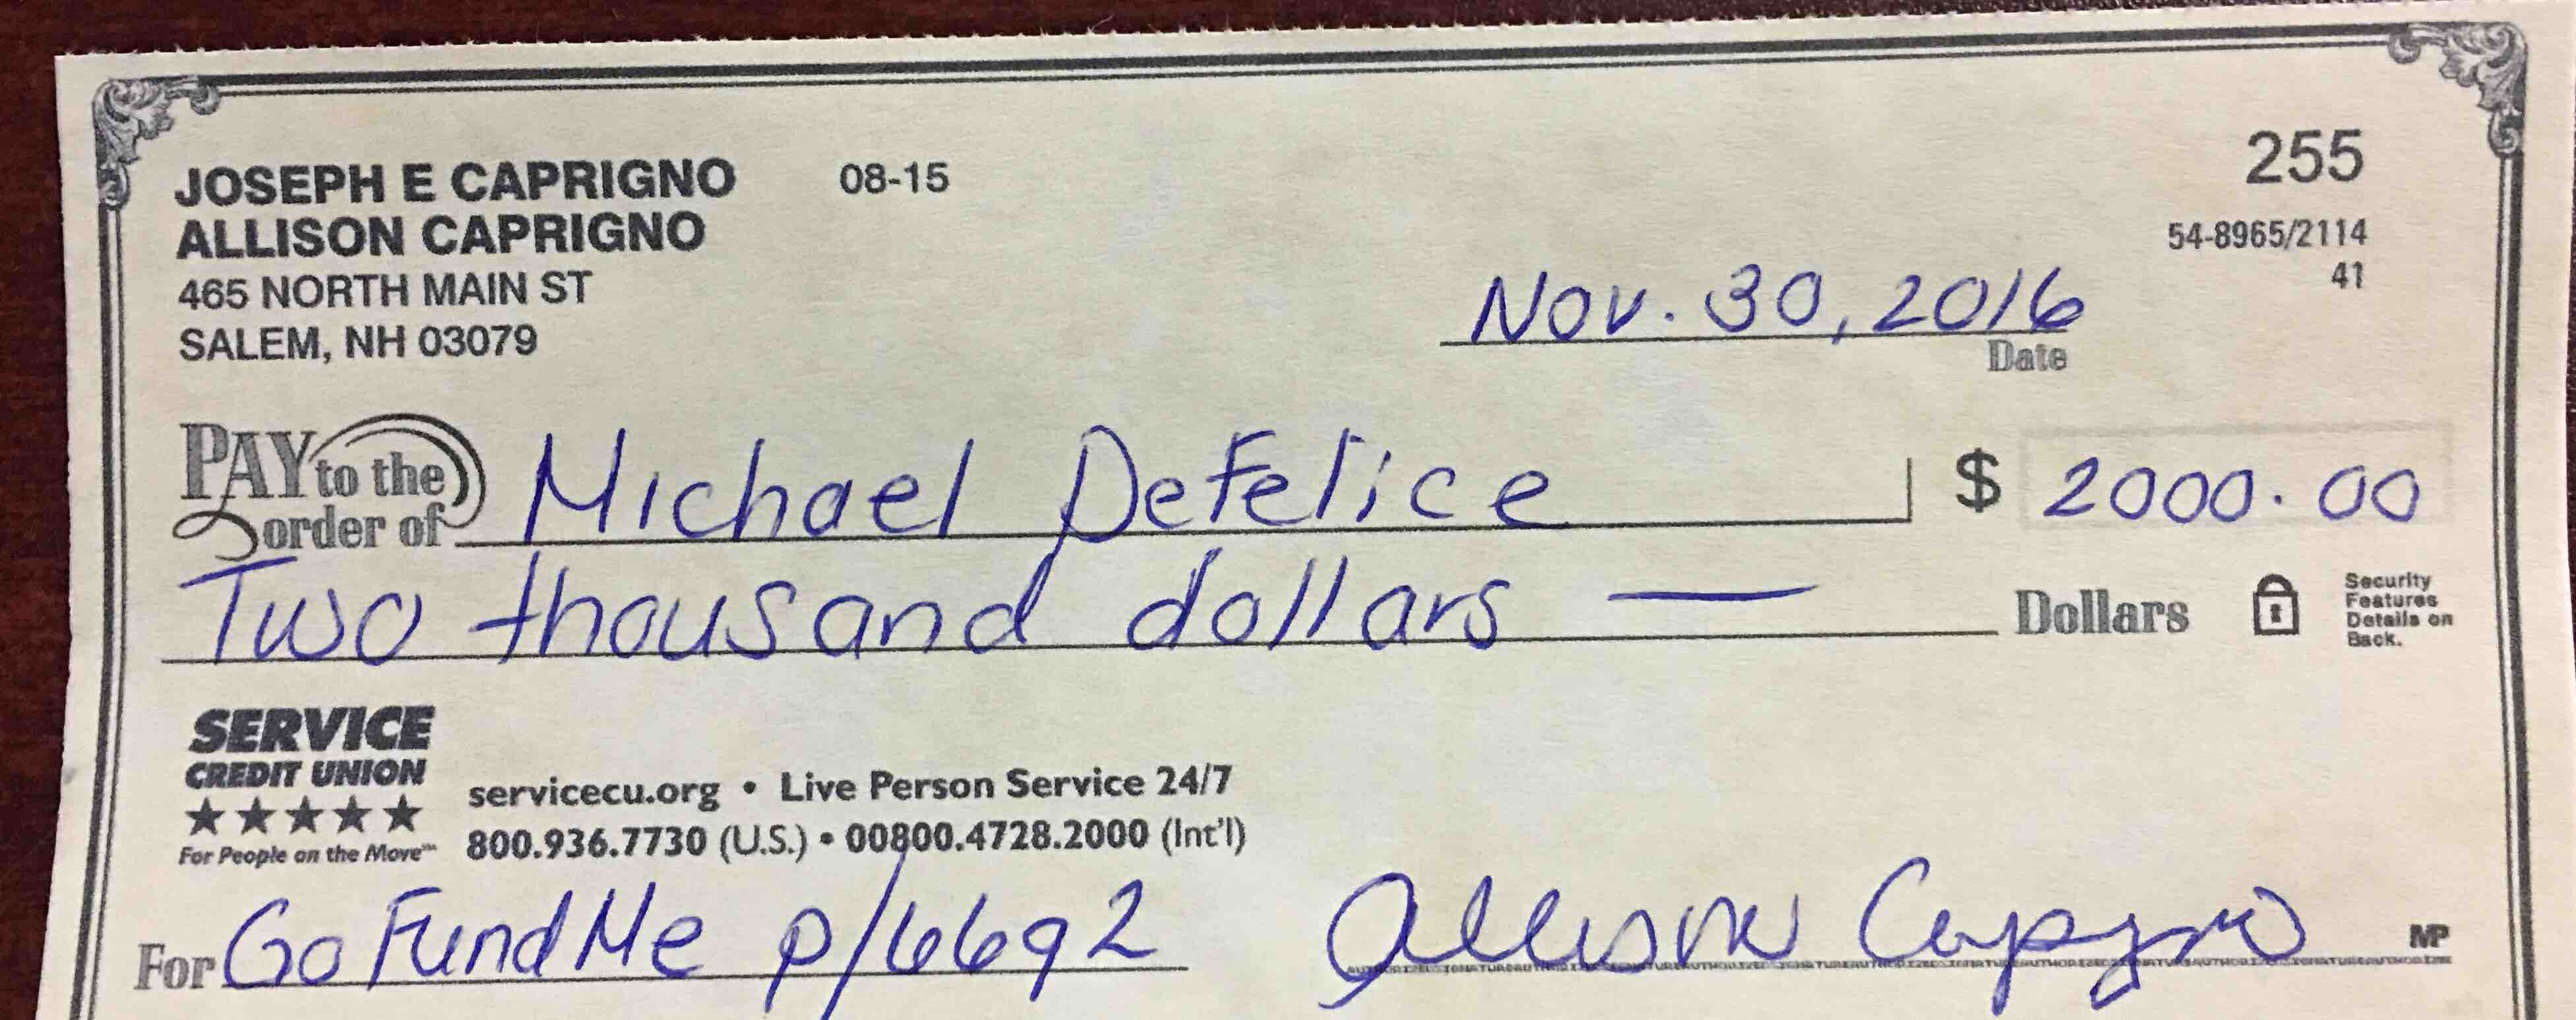 defelice family fund by allison downing caprigno gofundme today we got this first check to mike linda i am sure this will help get them back on their feet but let s still keep trying to reach our goal